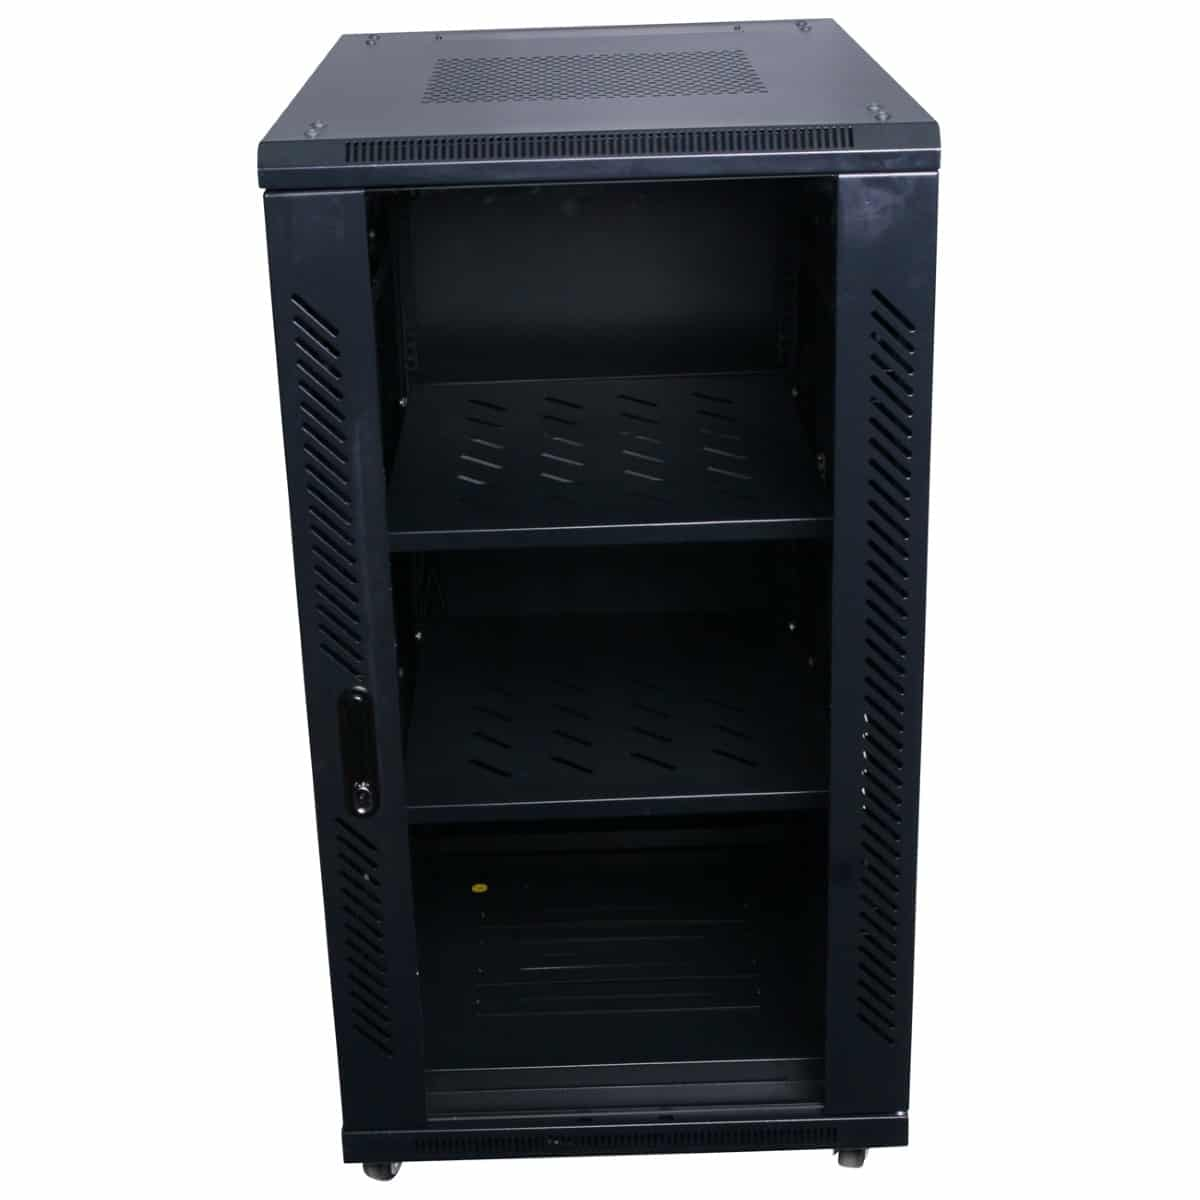 22RU 800mm Deep X 600mm Wide Rack Cabinet